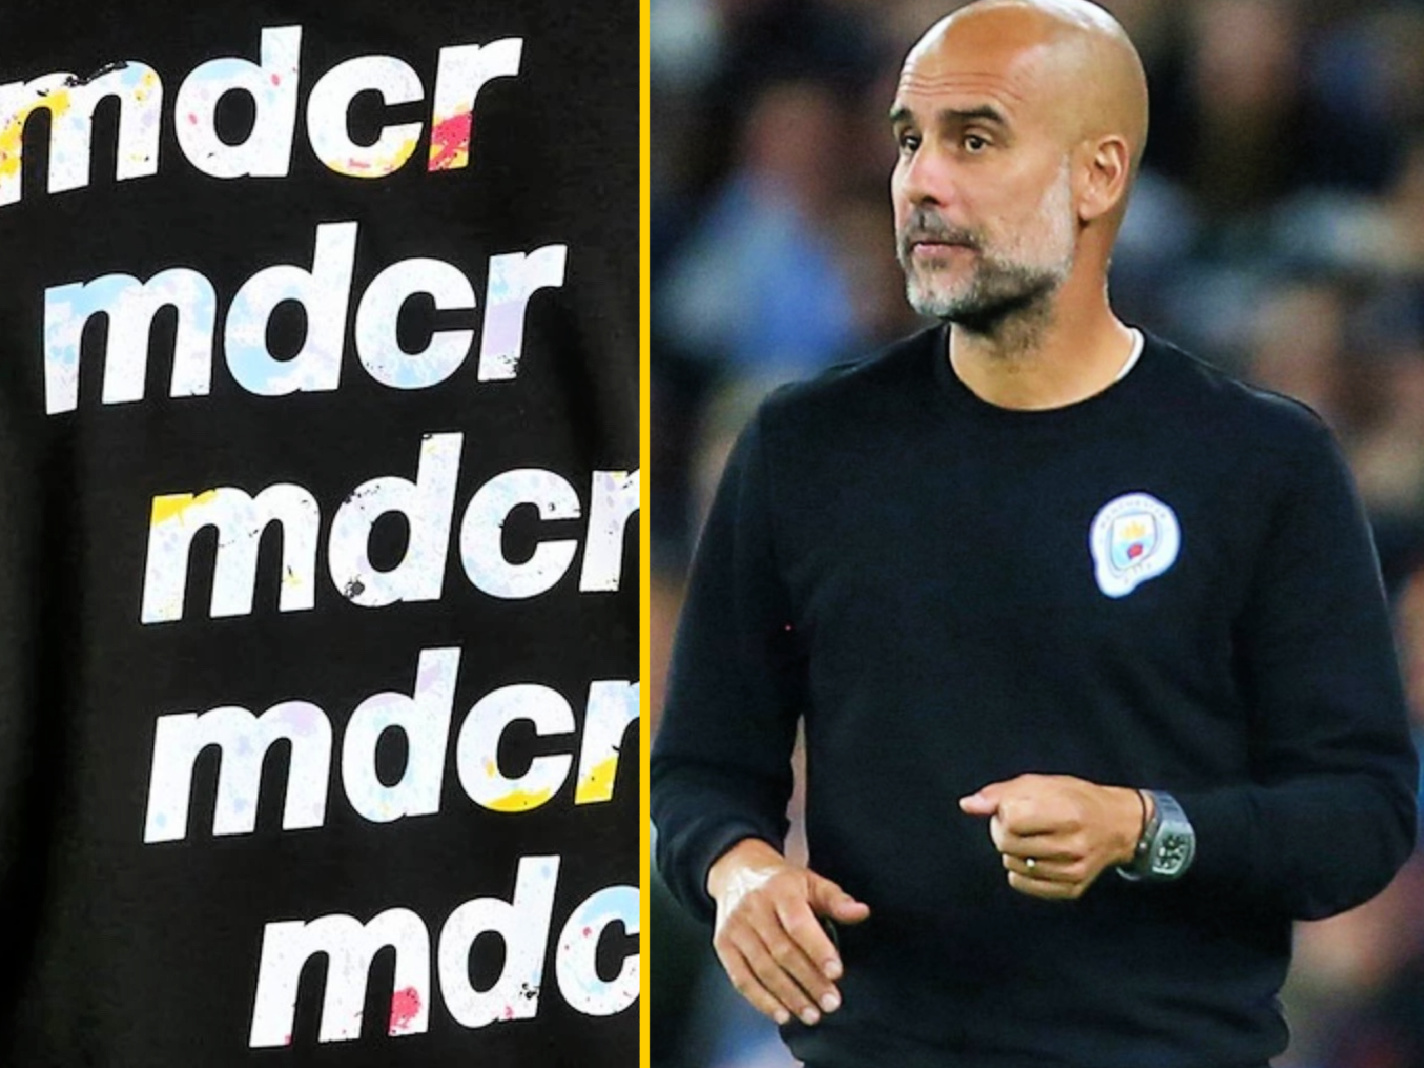 Man City manager Pep Guardiola rocks 'Madchester' get up vs Chelsea